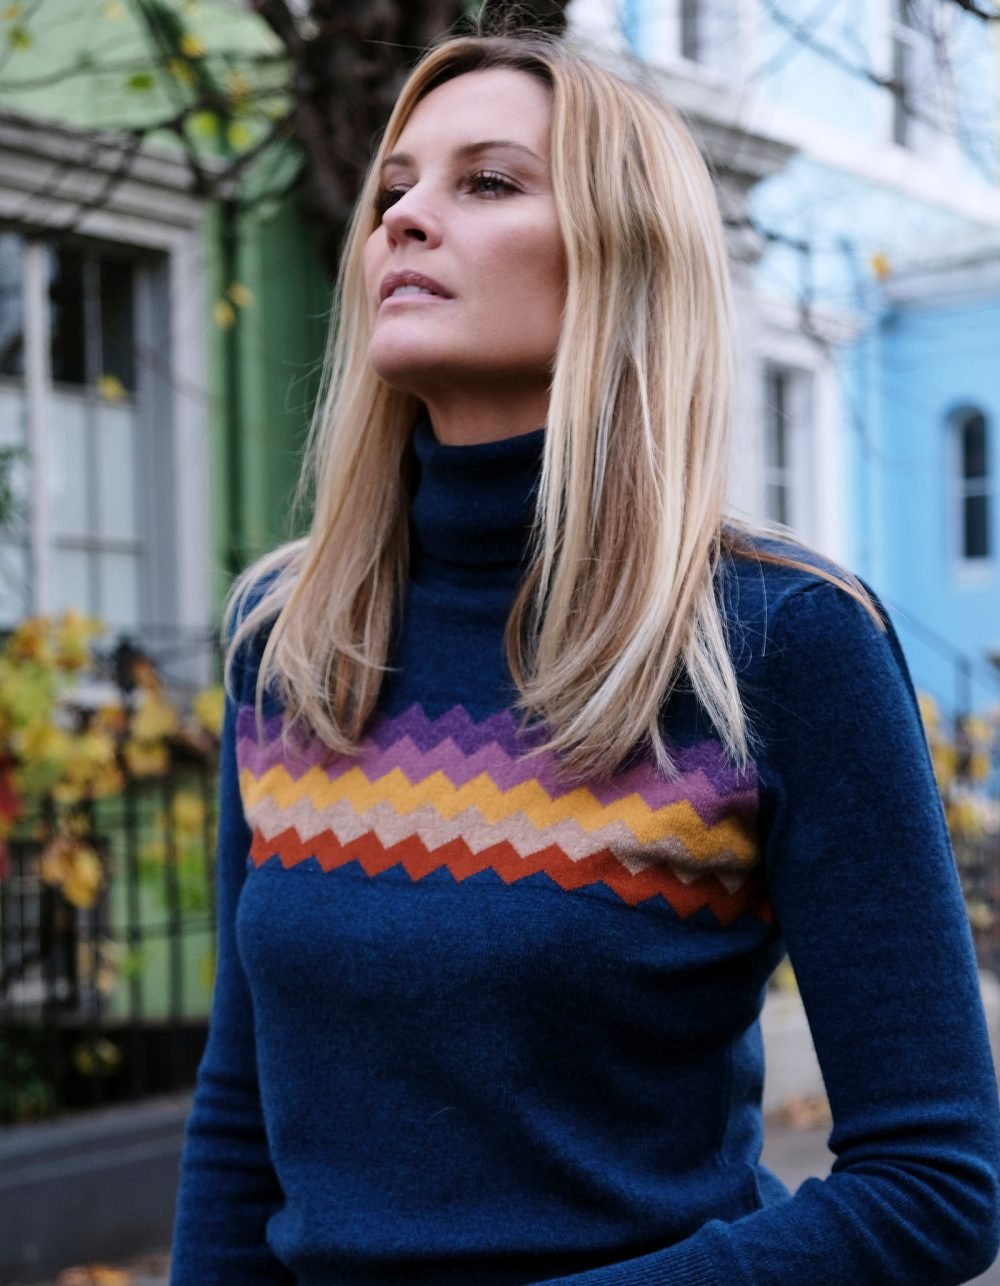 A woman wearing malin darlin cashmere knitwear, the Zigzag Blue cashmere jumper, with houses in the background.